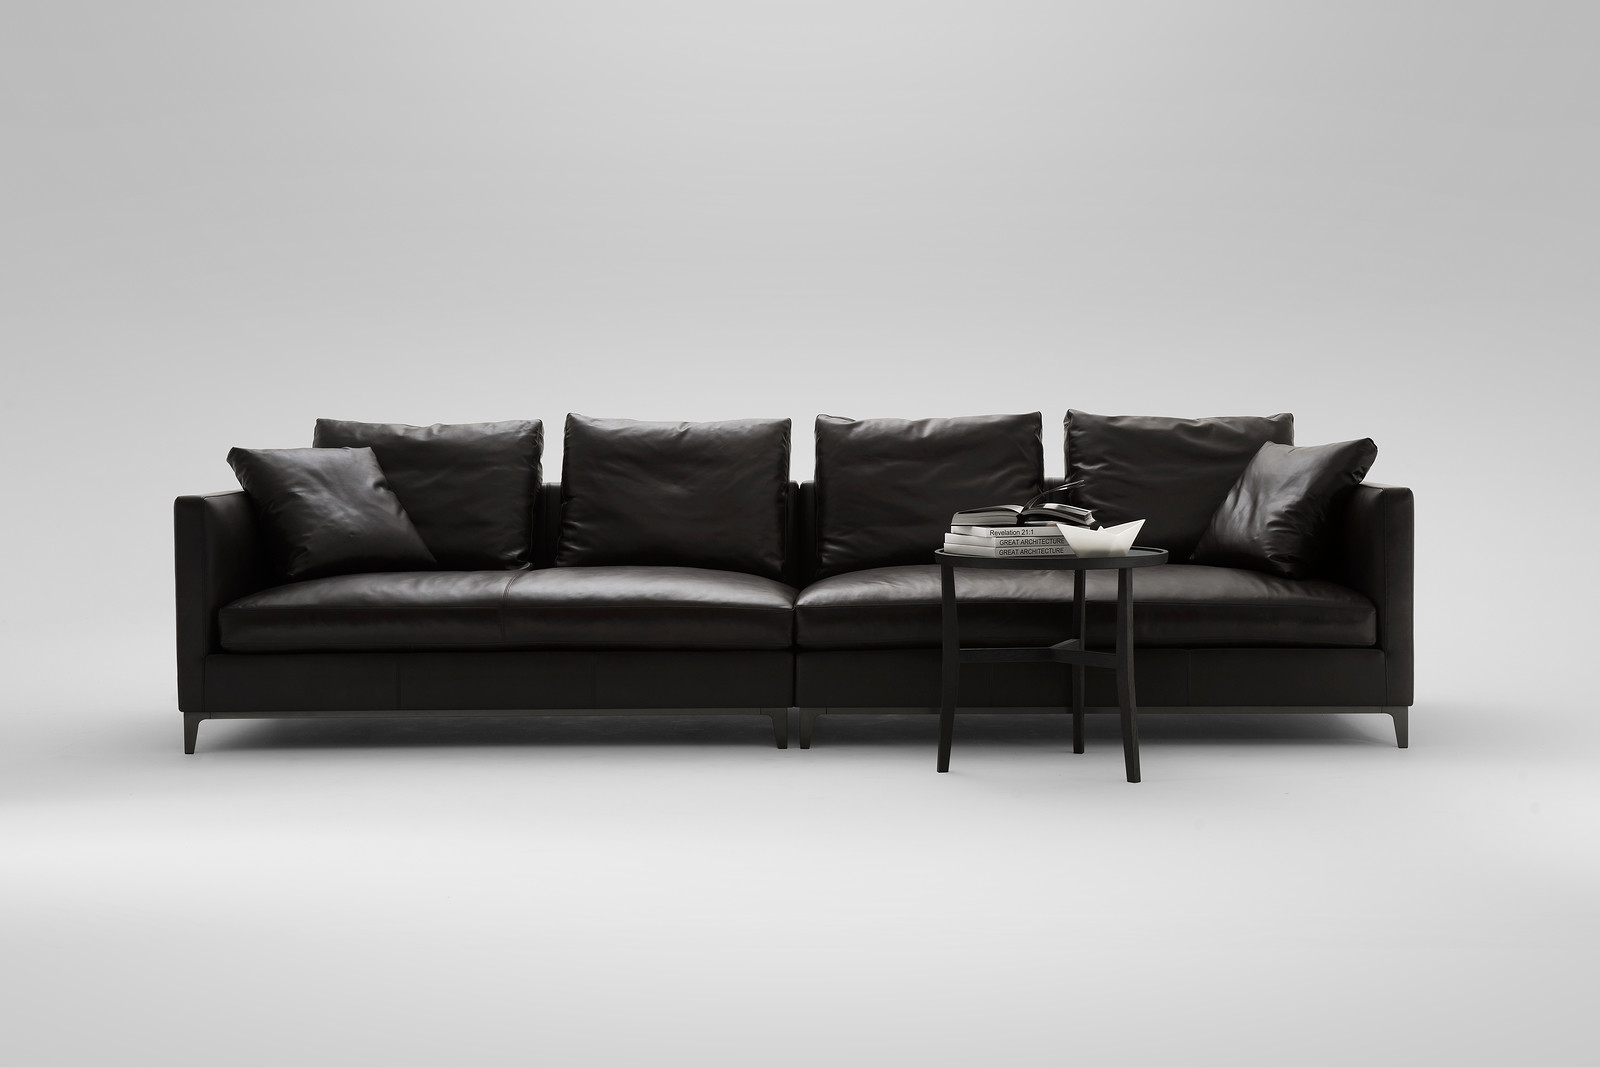 crescent sofa camerich 1005c contemporary black and white leather sectional lytle pressley